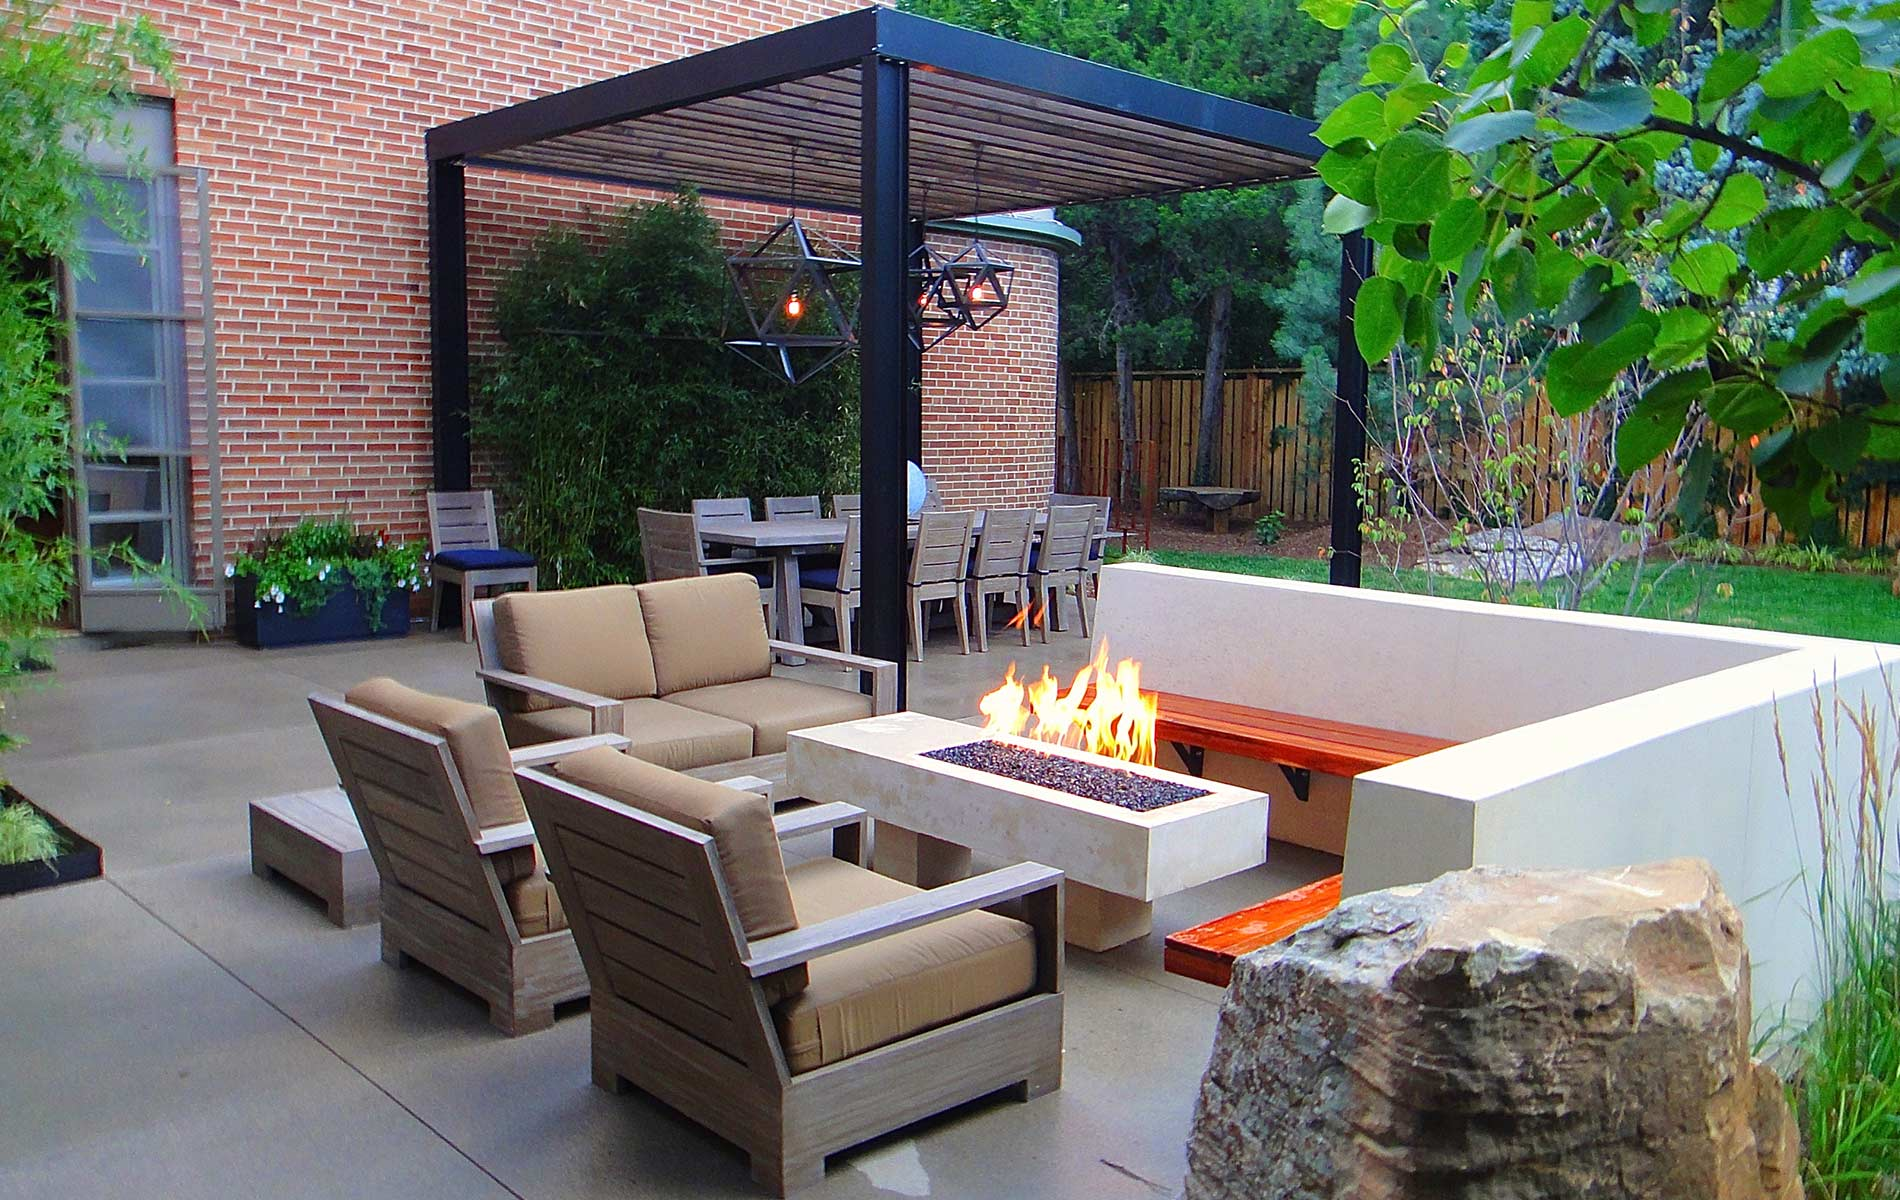 Sleek Modern Outdoor Living Space in Park Hill - Mile High ... on Designer Outdoor Living  id=95845